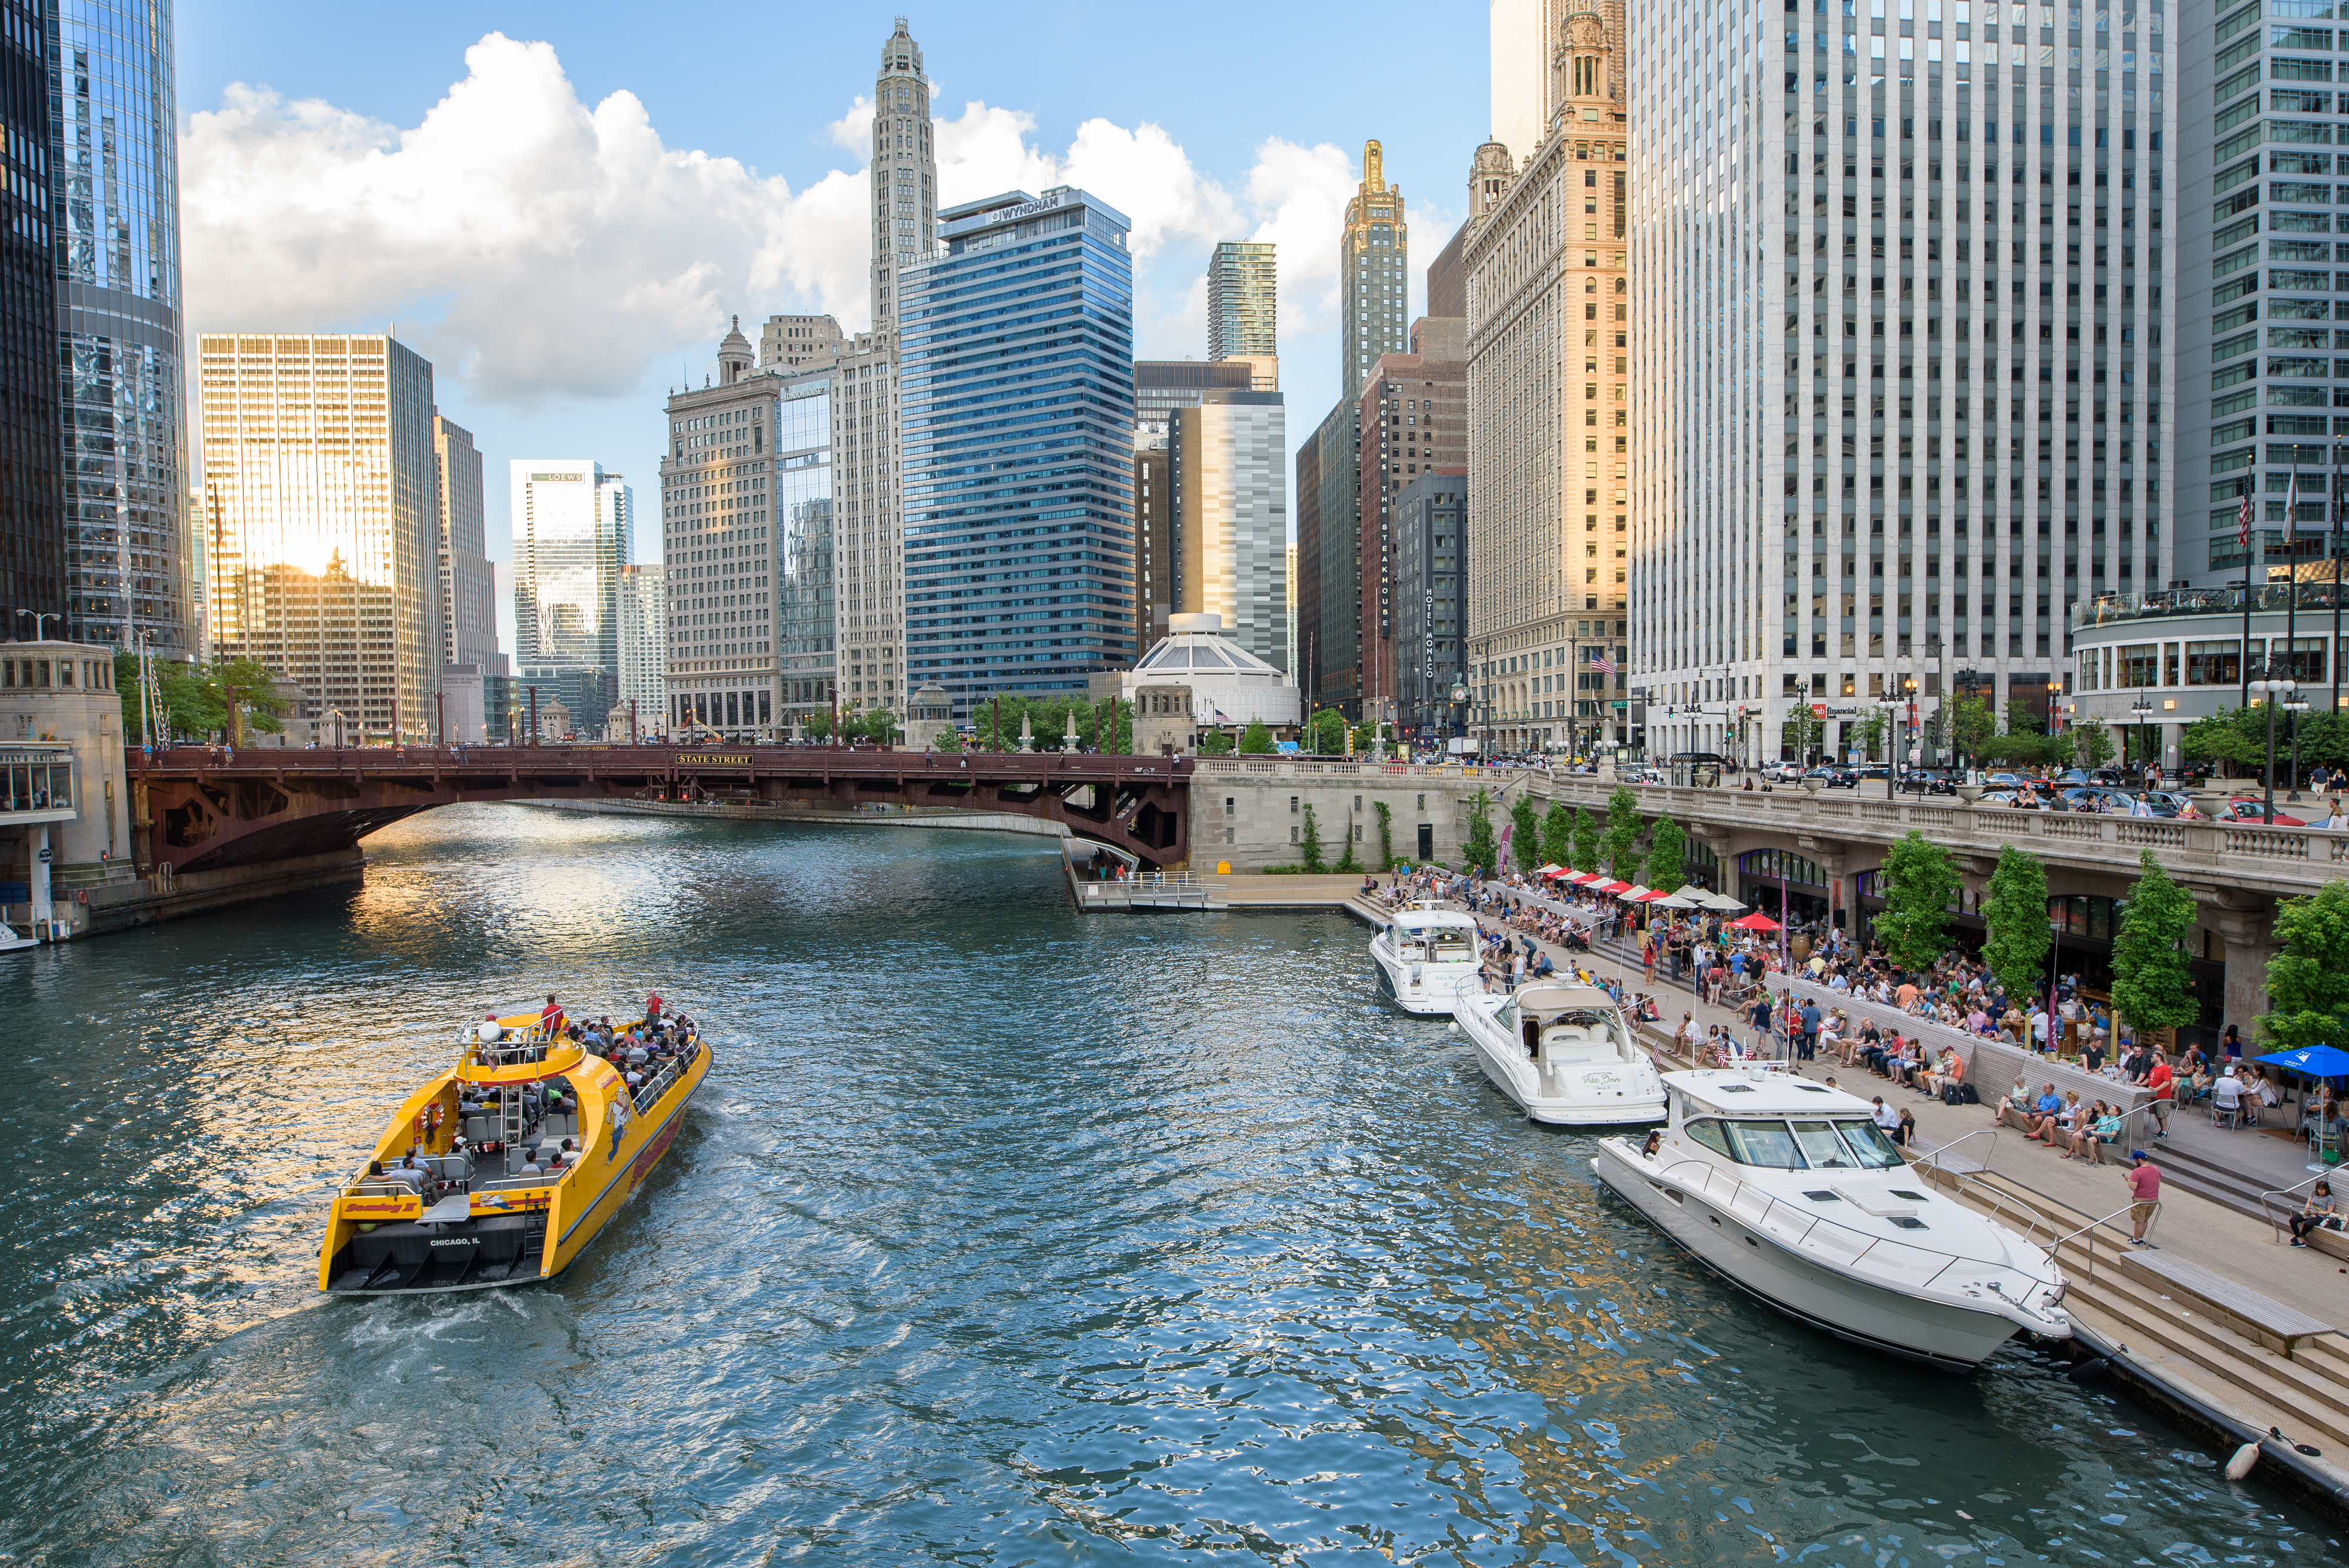 photos_chicago_il_Chicago_Riverwalk_by_R